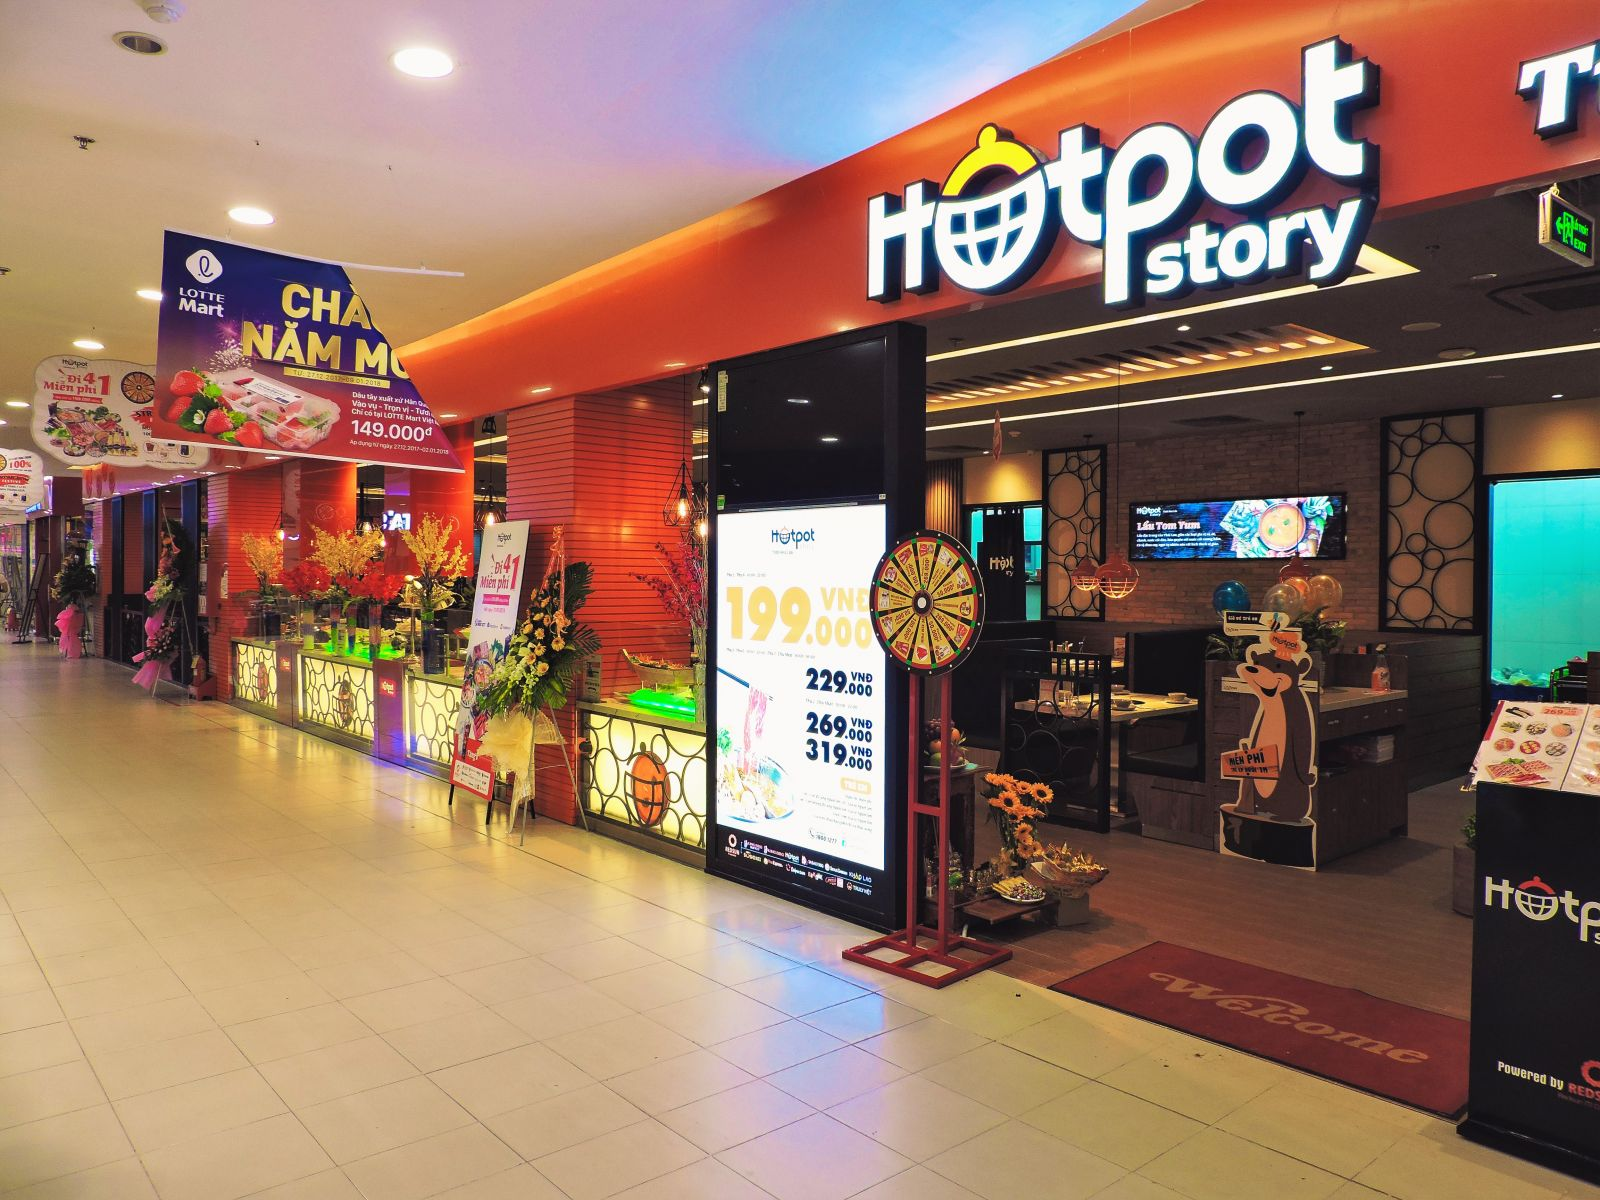 Project Hotpot Story restaurant - Lotte Mart district 7